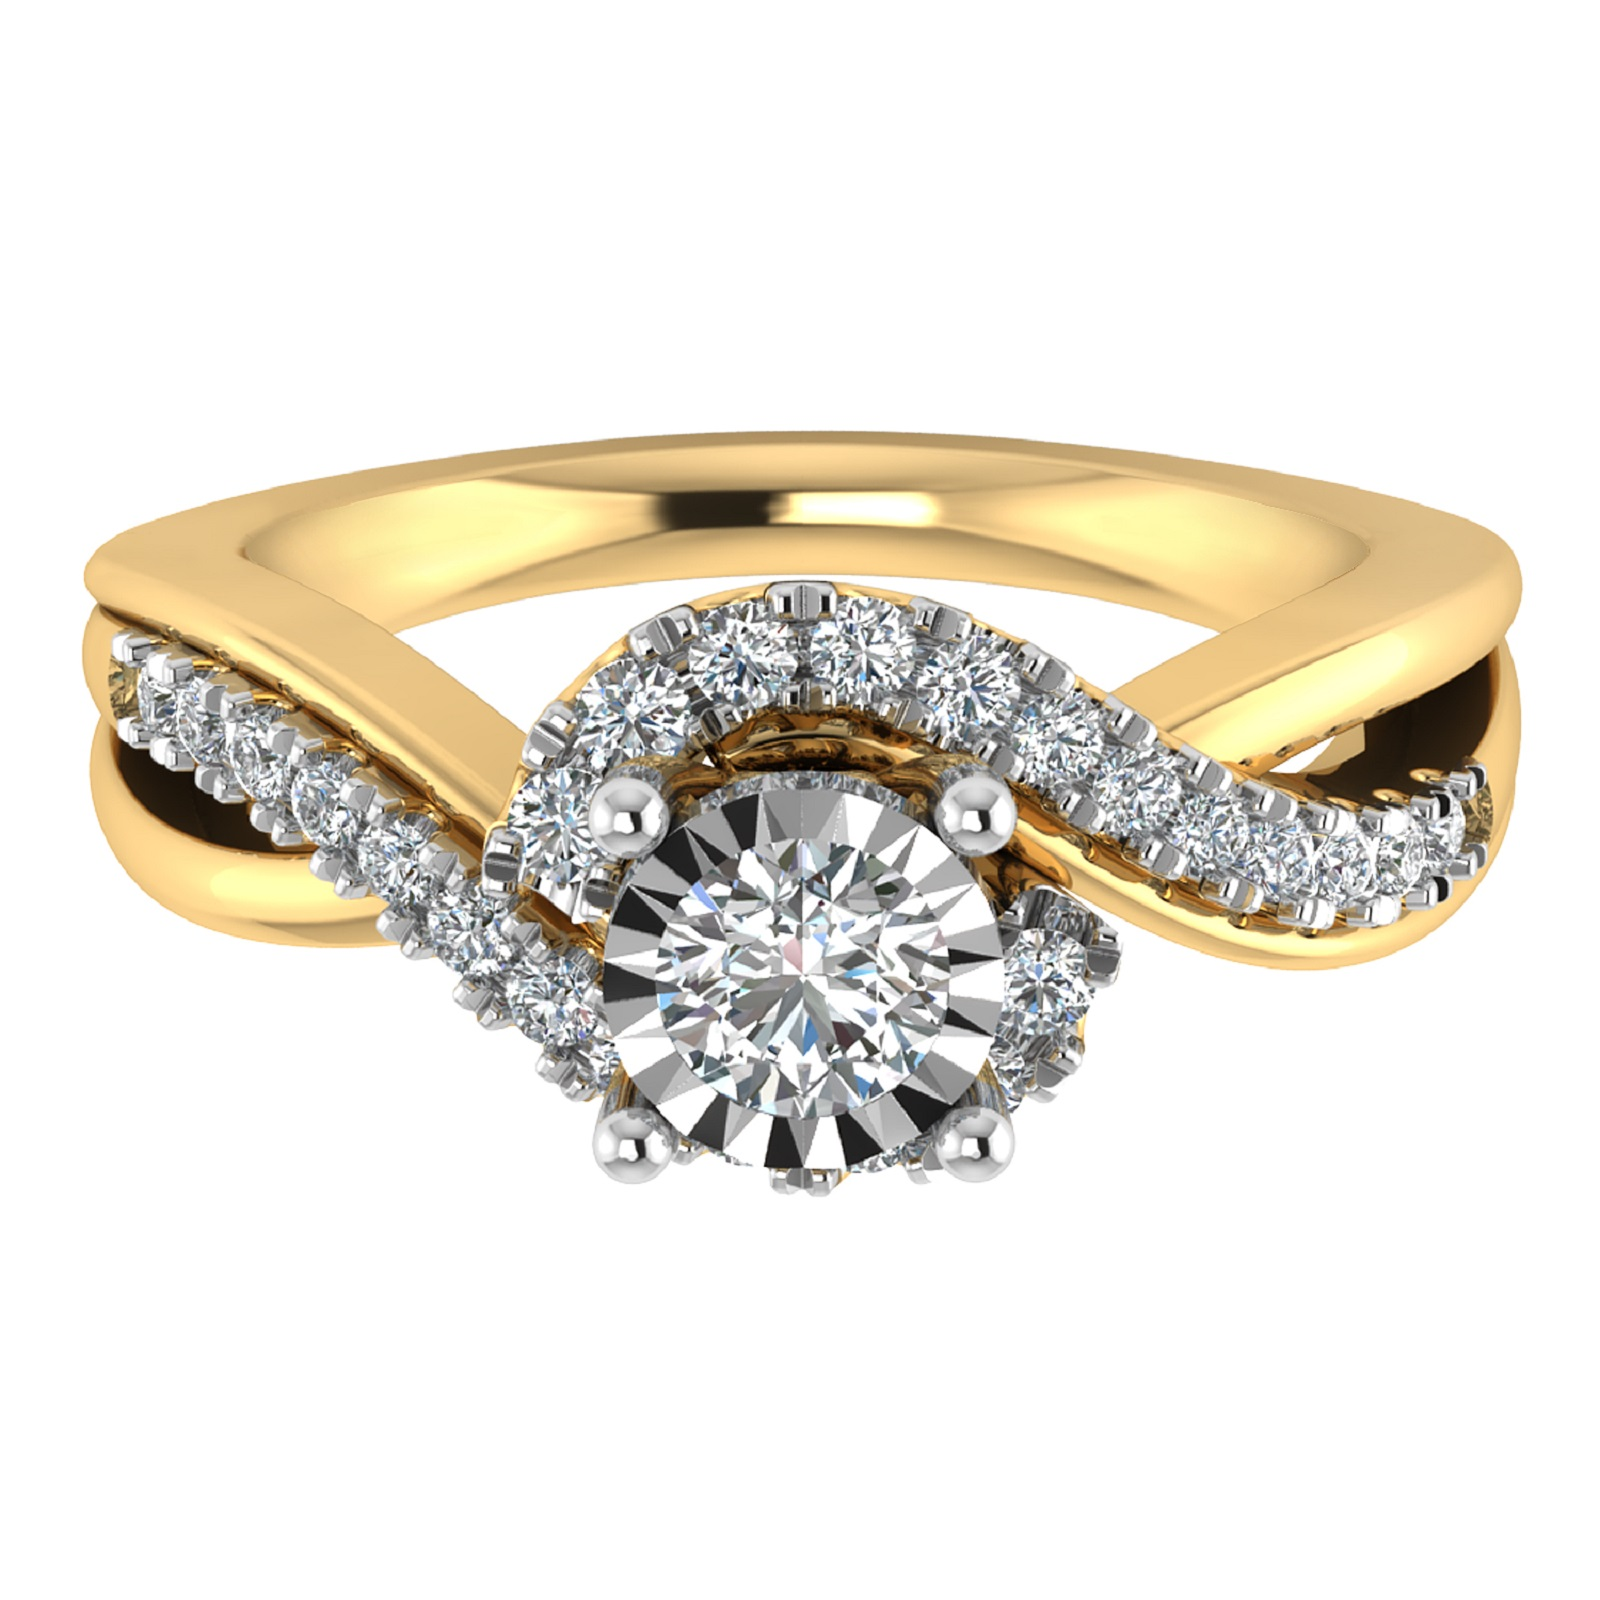 Tru Miracle 10k Yellow Gold Bridal 1 2 Cttw Diamond Engagement Ring